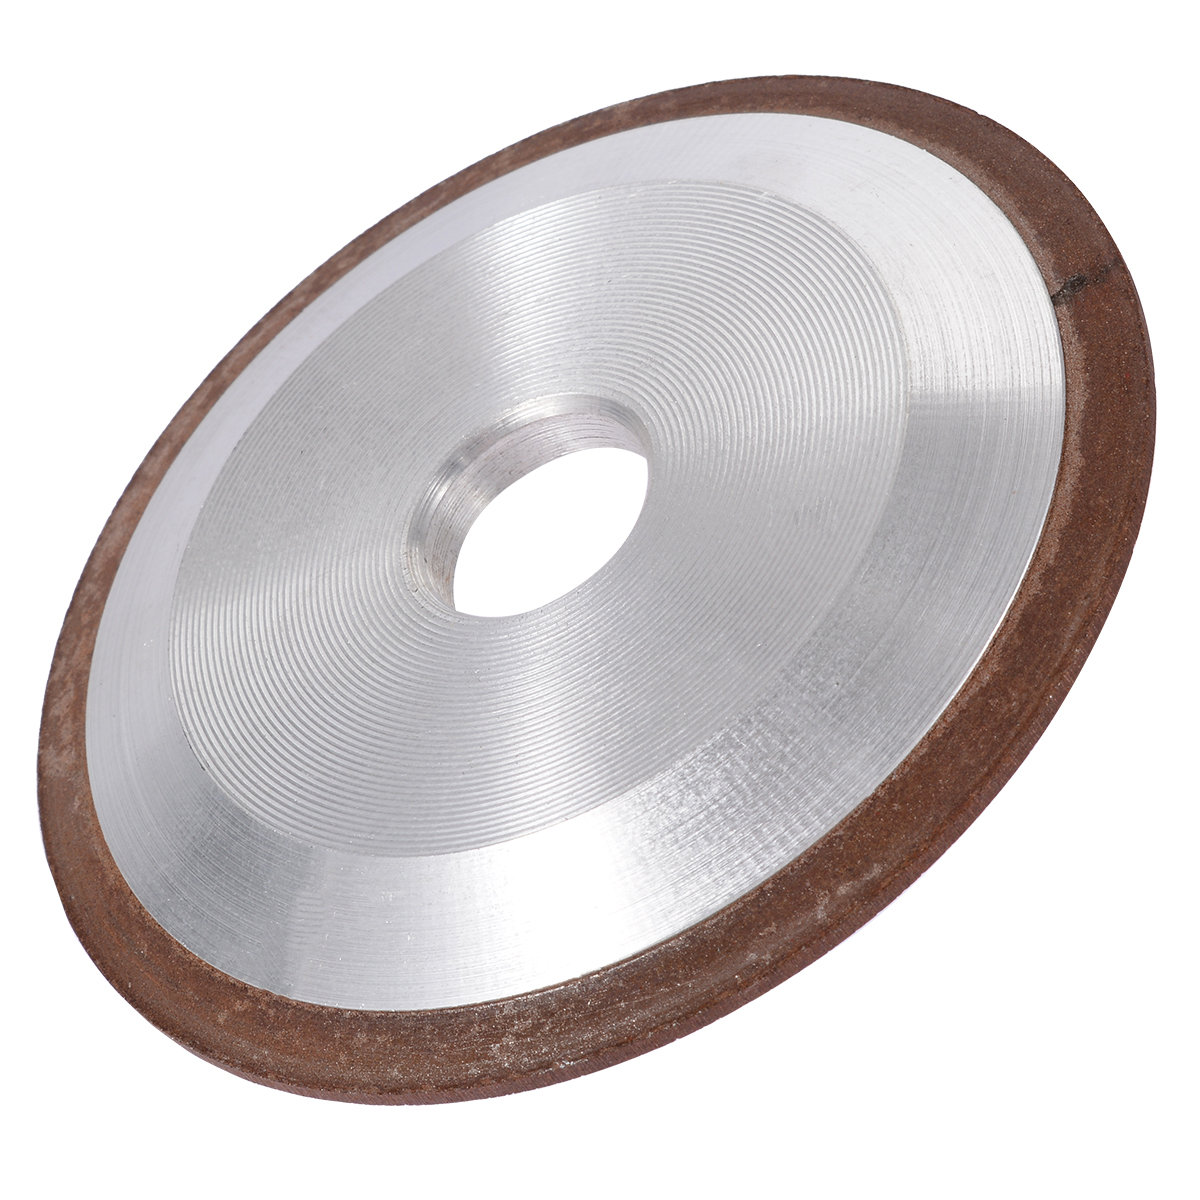 Mayitr One Side Cone Resin Diamond Grinding Wheel Disc Sharpening Emery Power Tools 125mm 150 Grit